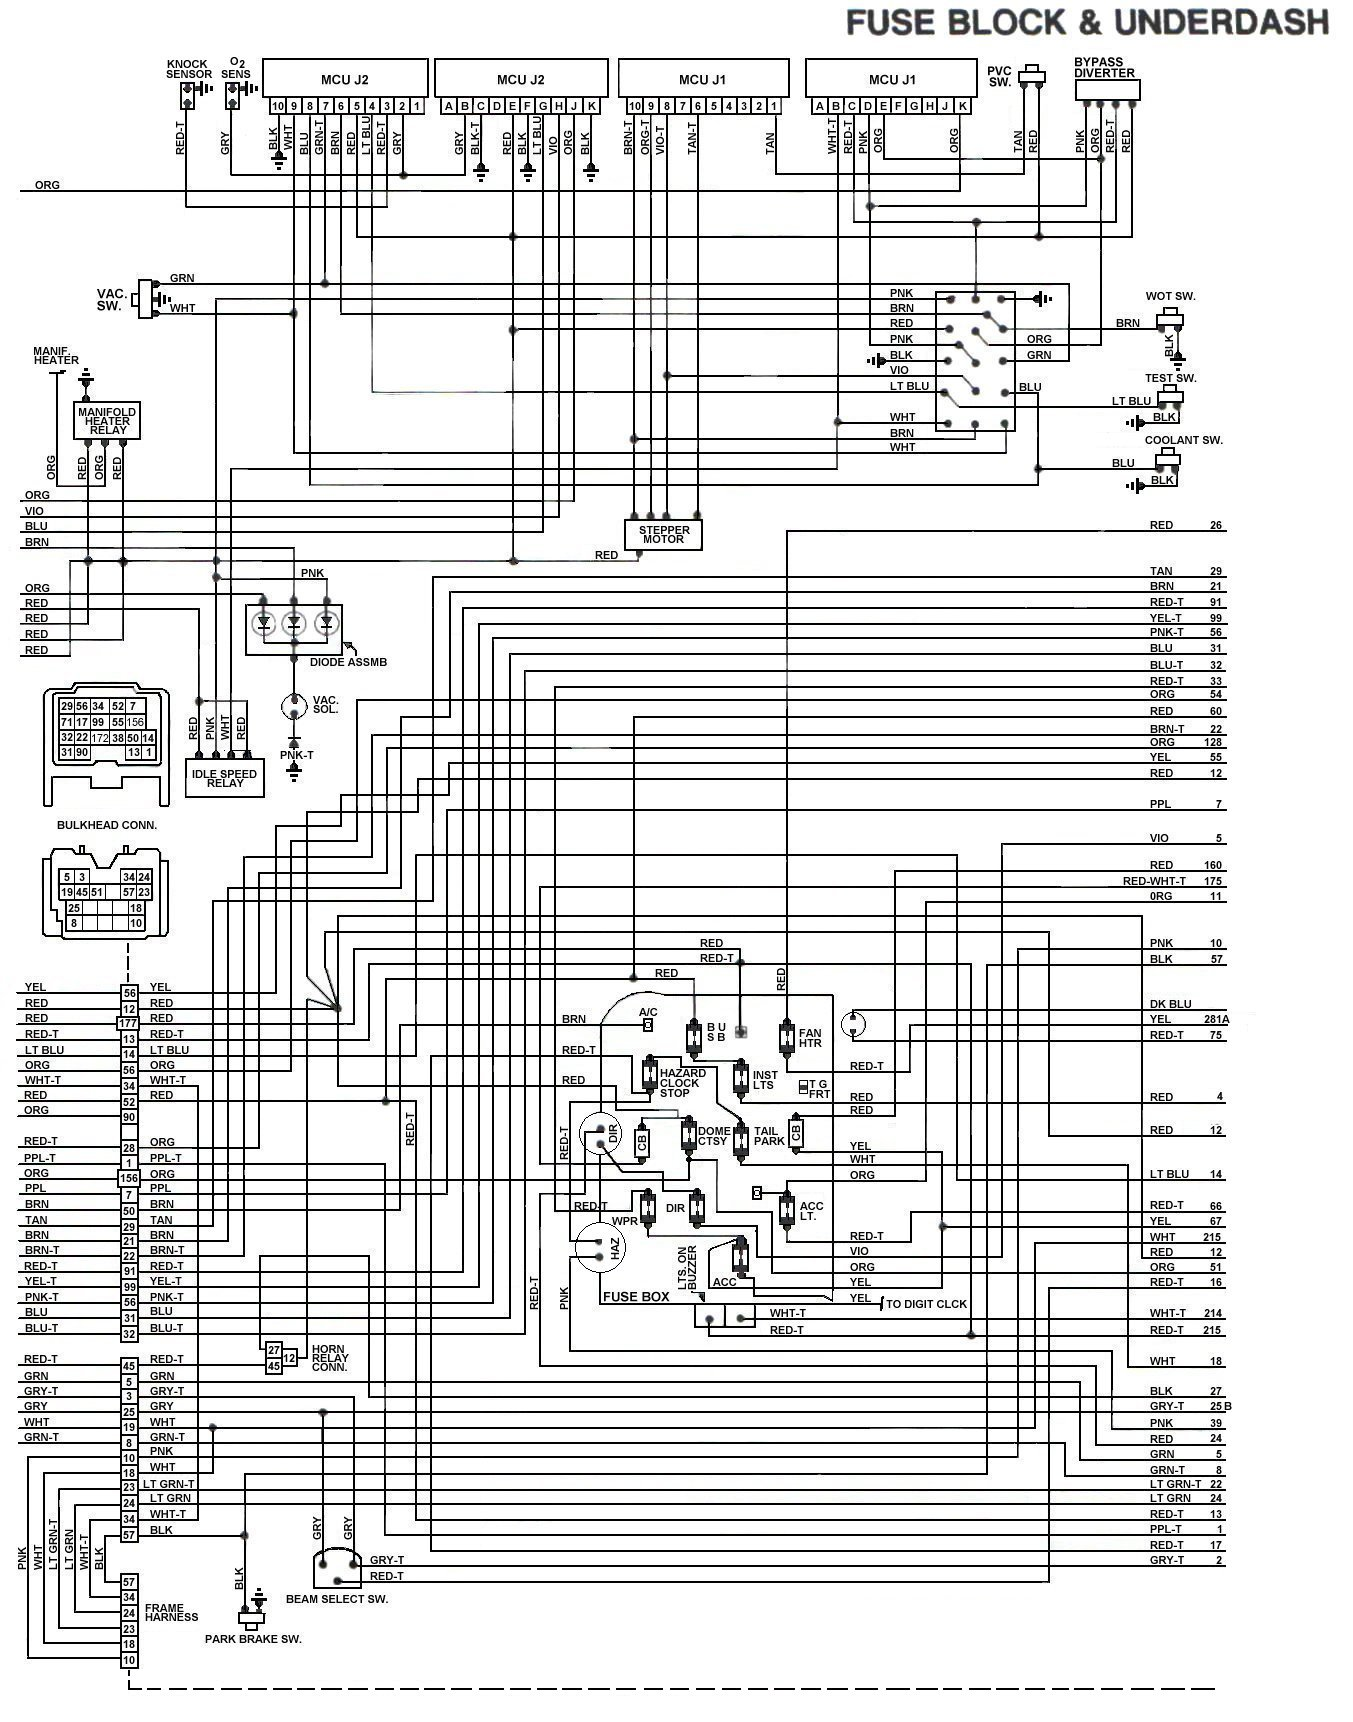 83_FSJ_WiringDiagram_FuseBlock Underdash tom 'oljeep' collins fsj wiring page  at crackthecode.co